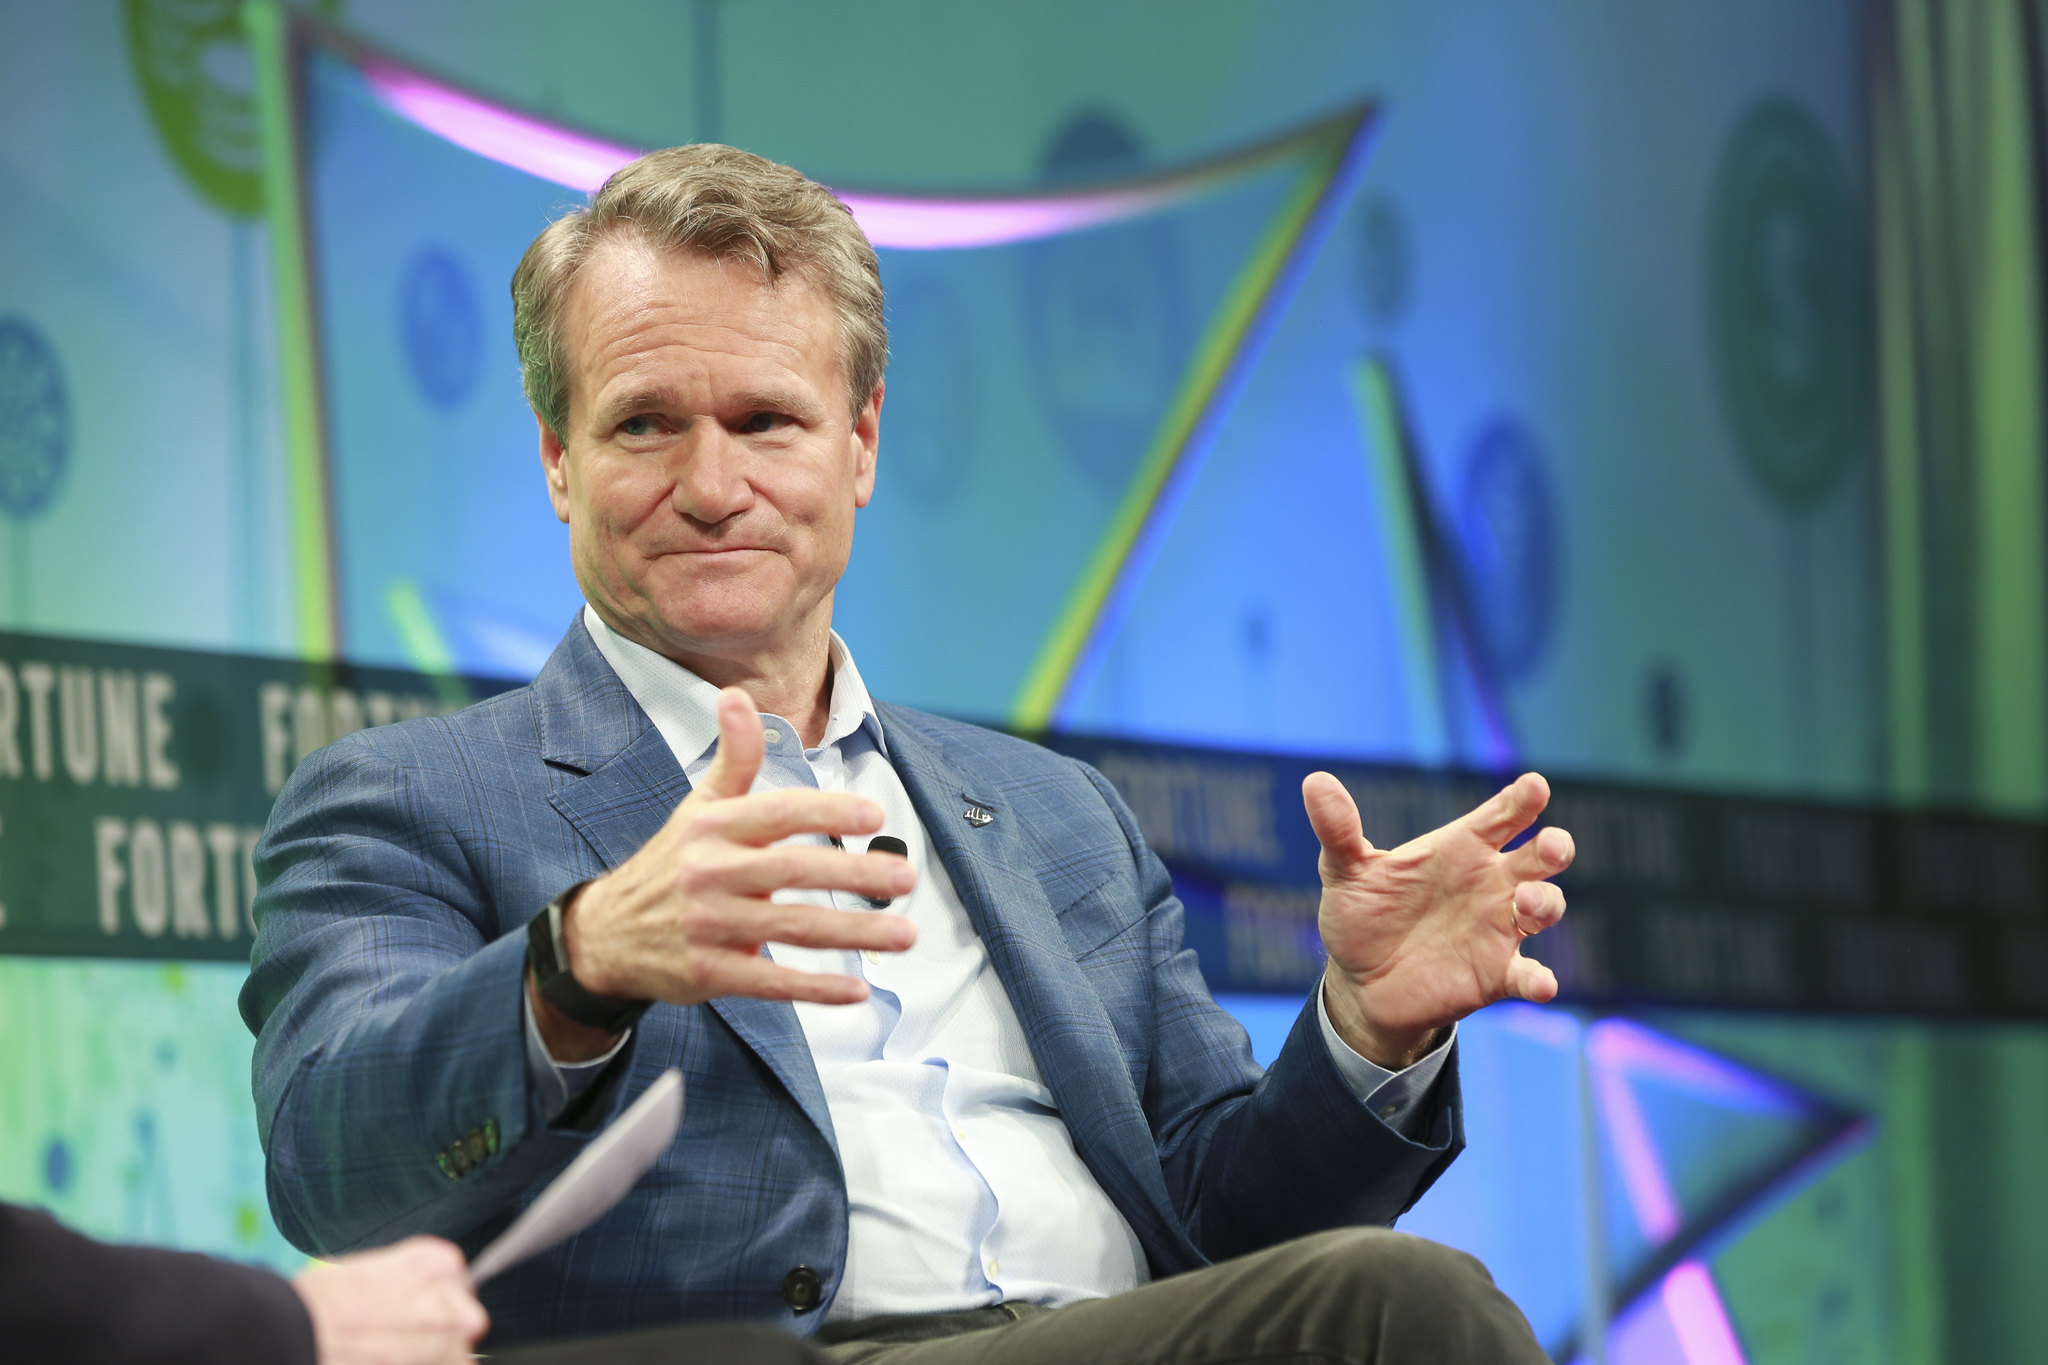 Brian Moynihan CEO of Bank of America at Brainstorm Finance